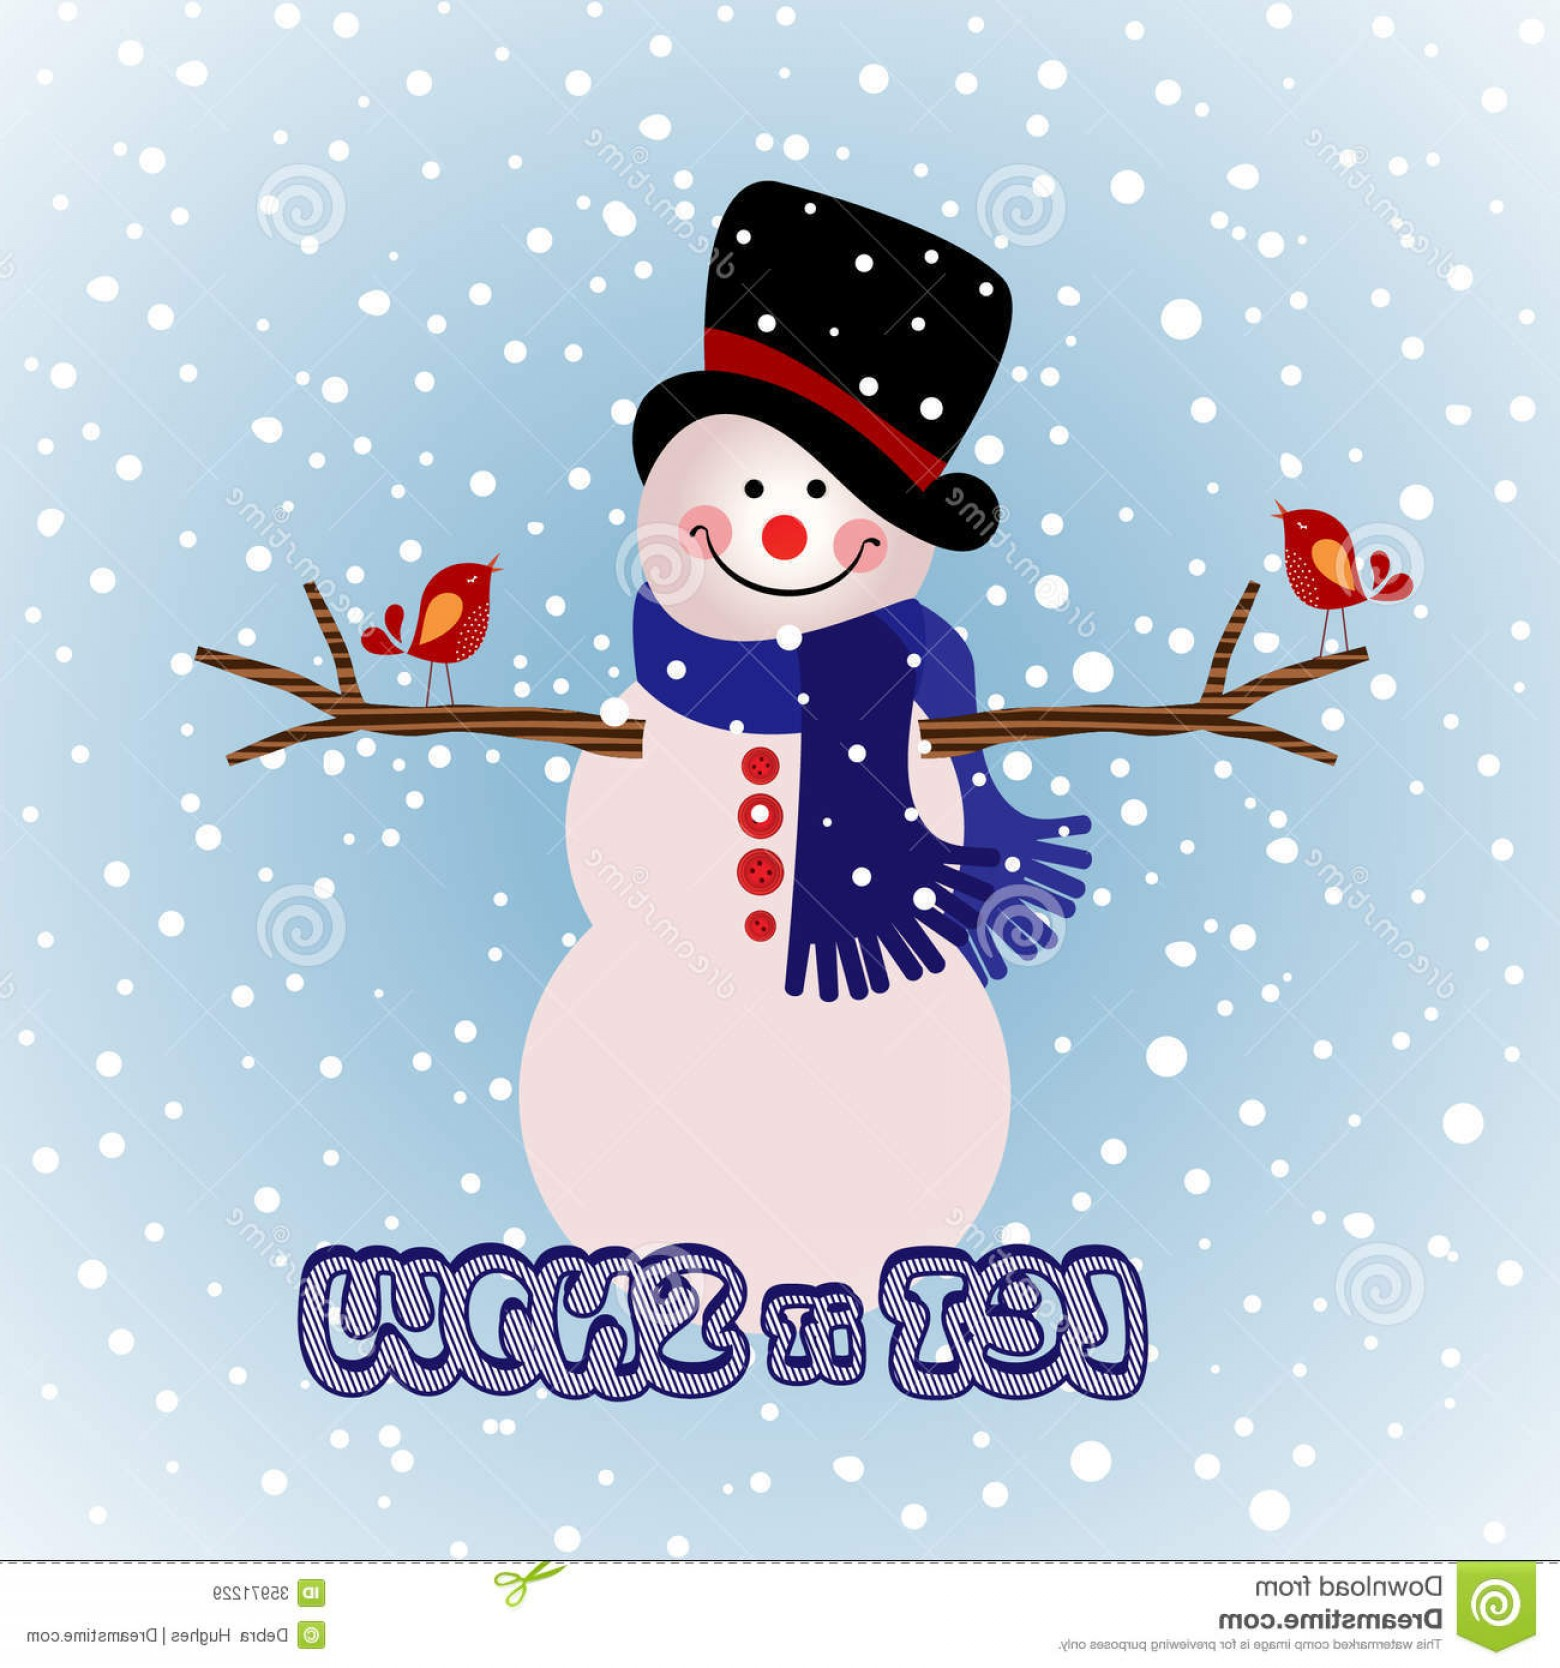 Mittens and snowman hat clipart whimsical image royalty free Royalty Free Stock Images Winter Snowman Arms Out Birds ... image royalty free